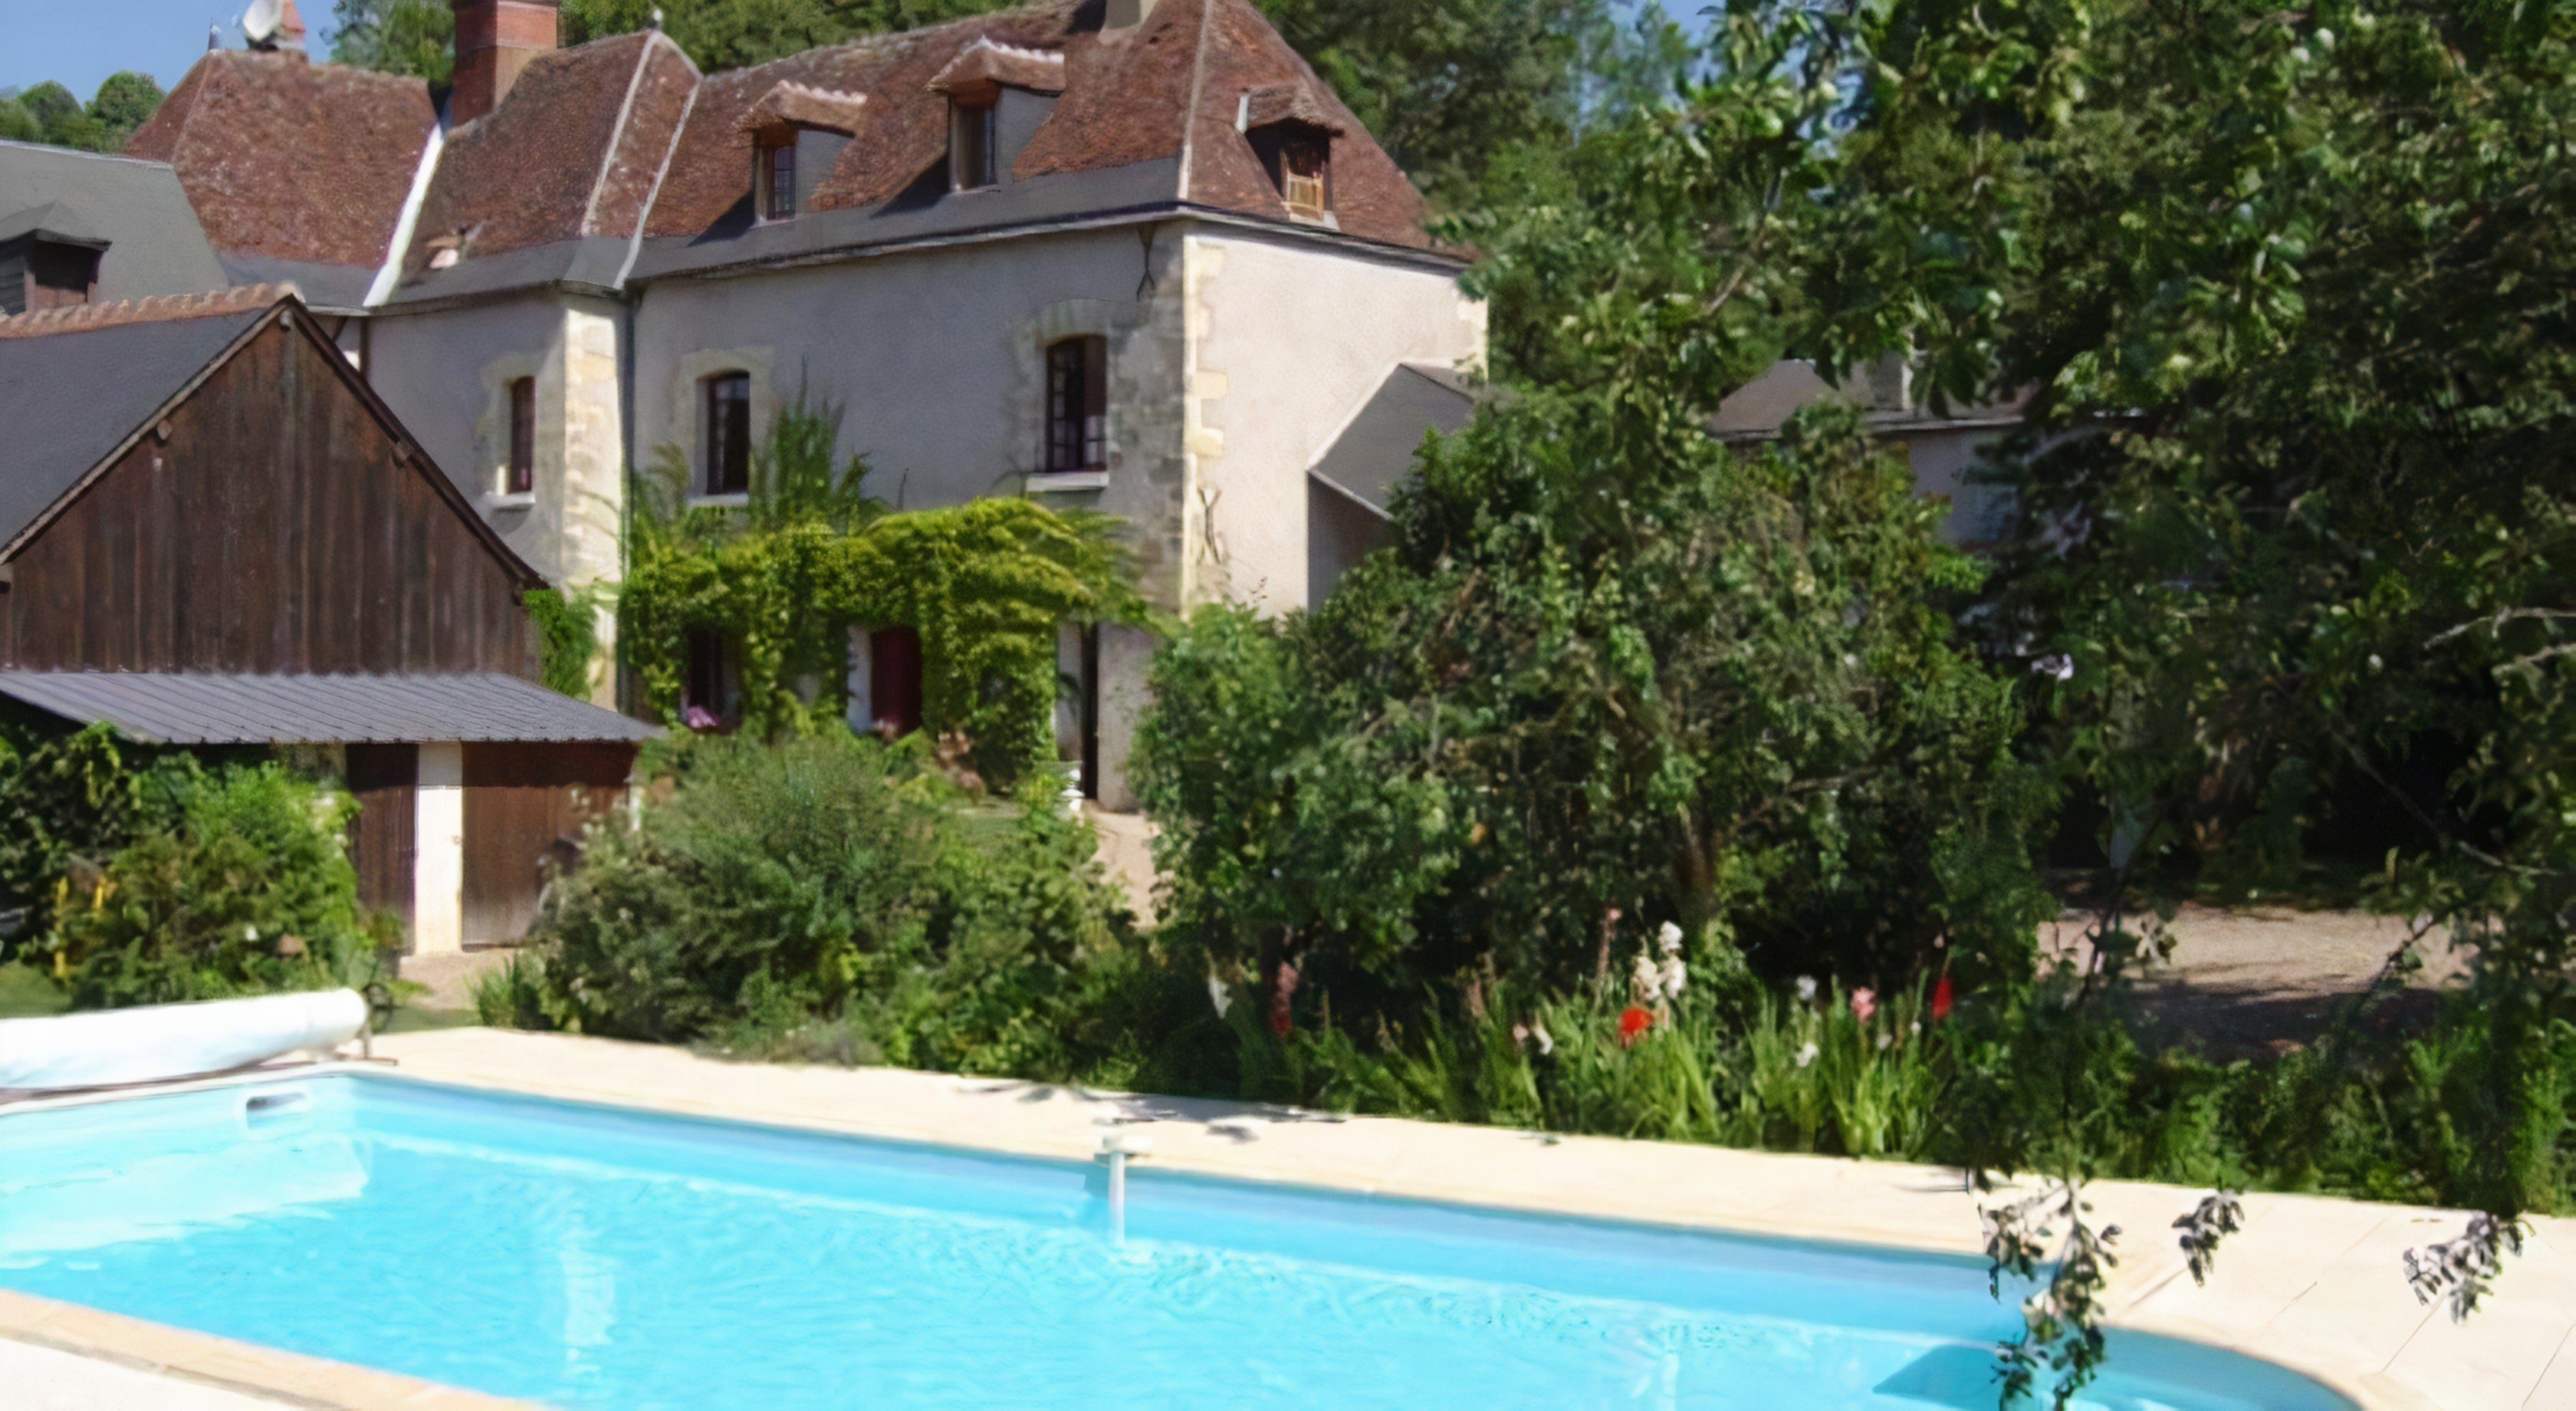 A house with a pool in front of a building at The Le Moulin des landes.